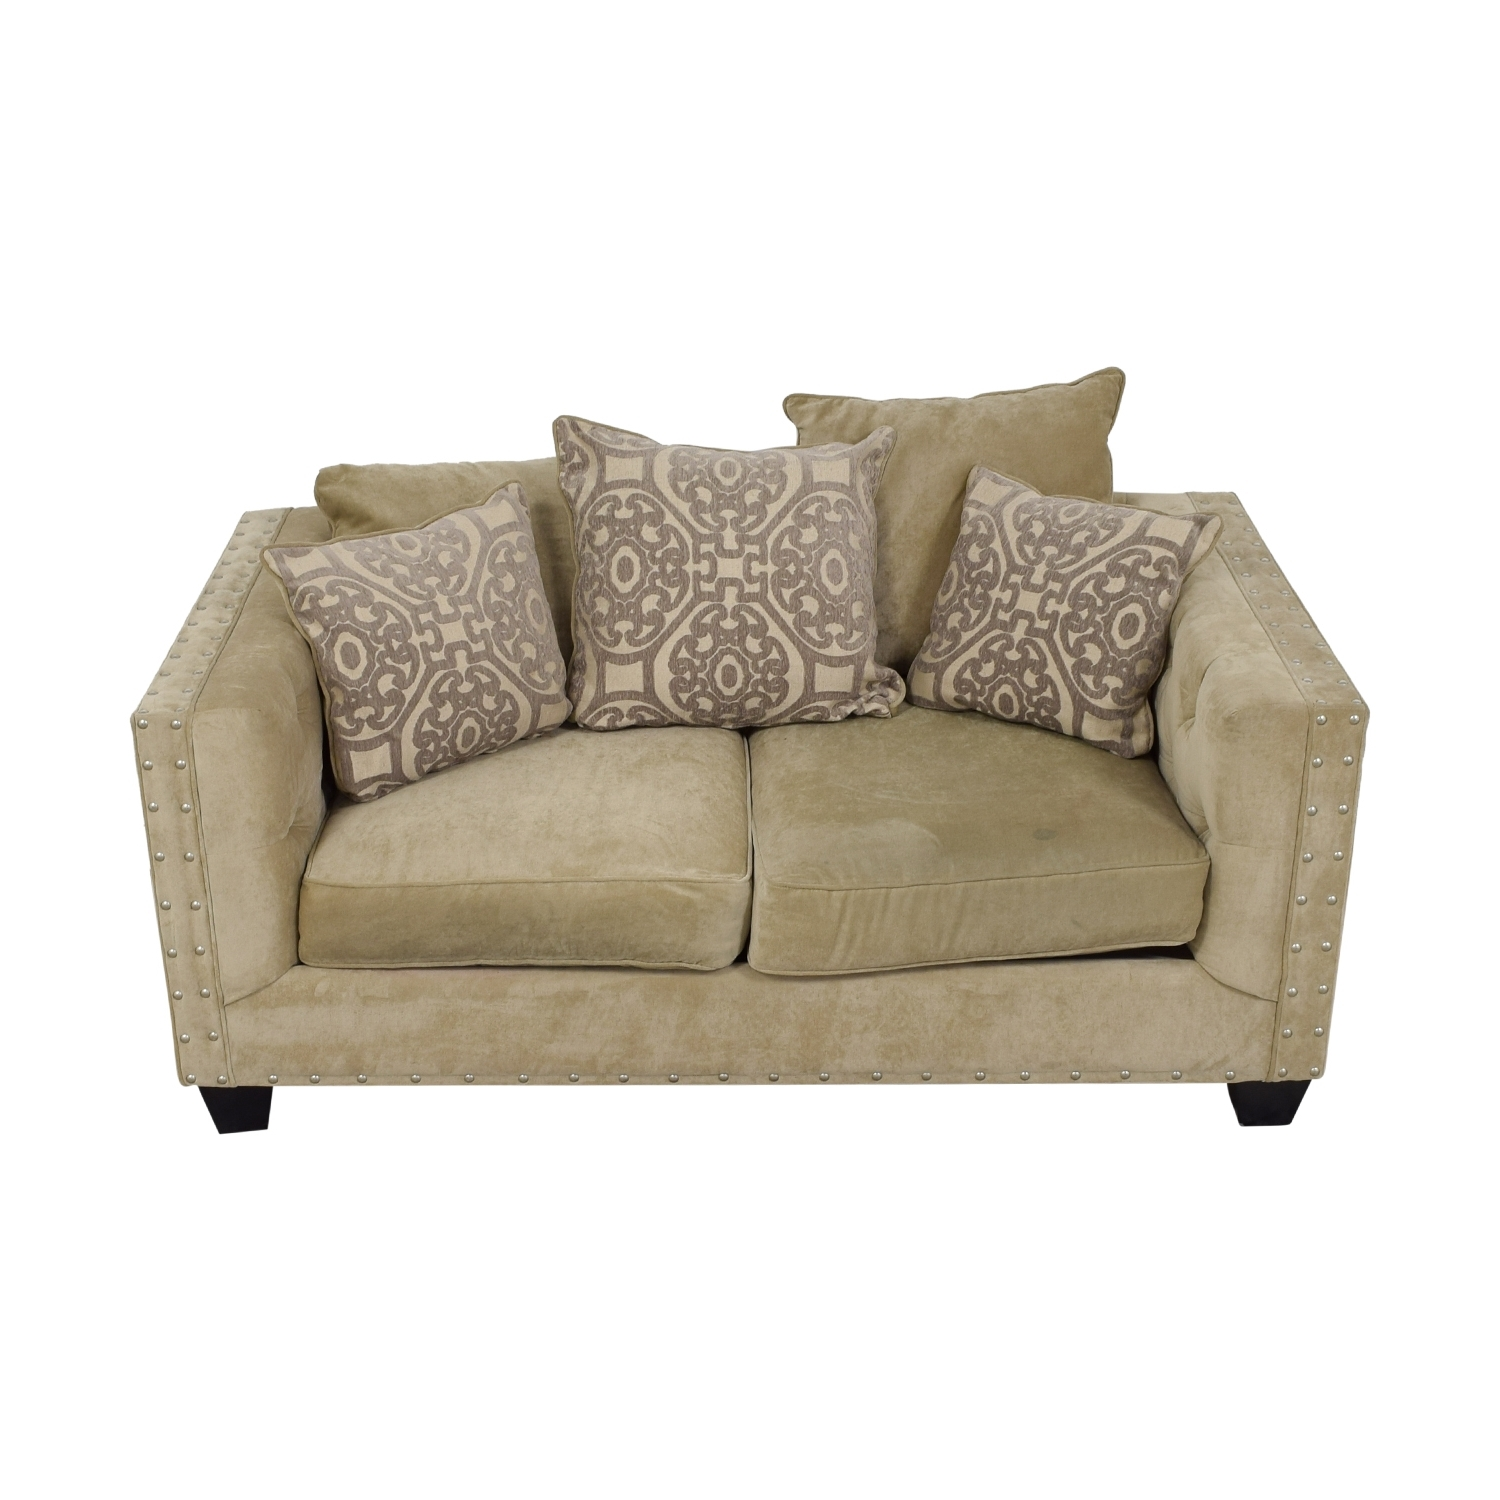 [%45% Off – West Elm West Elm Everett Dark Grey Microsuede Couch / Sofas With Regard To Newest Cindy Crawford Sofas|Cindy Crawford Sofas In Well Liked 45% Off – West Elm West Elm Everett Dark Grey Microsuede Couch / Sofas|Recent Cindy Crawford Sofas Throughout 45% Off – West Elm West Elm Everett Dark Grey Microsuede Couch / Sofas|Fashionable 45% Off – West Elm West Elm Everett Dark Grey Microsuede Couch / Sofas Within Cindy Crawford Sofas%] (View 13 of 20)